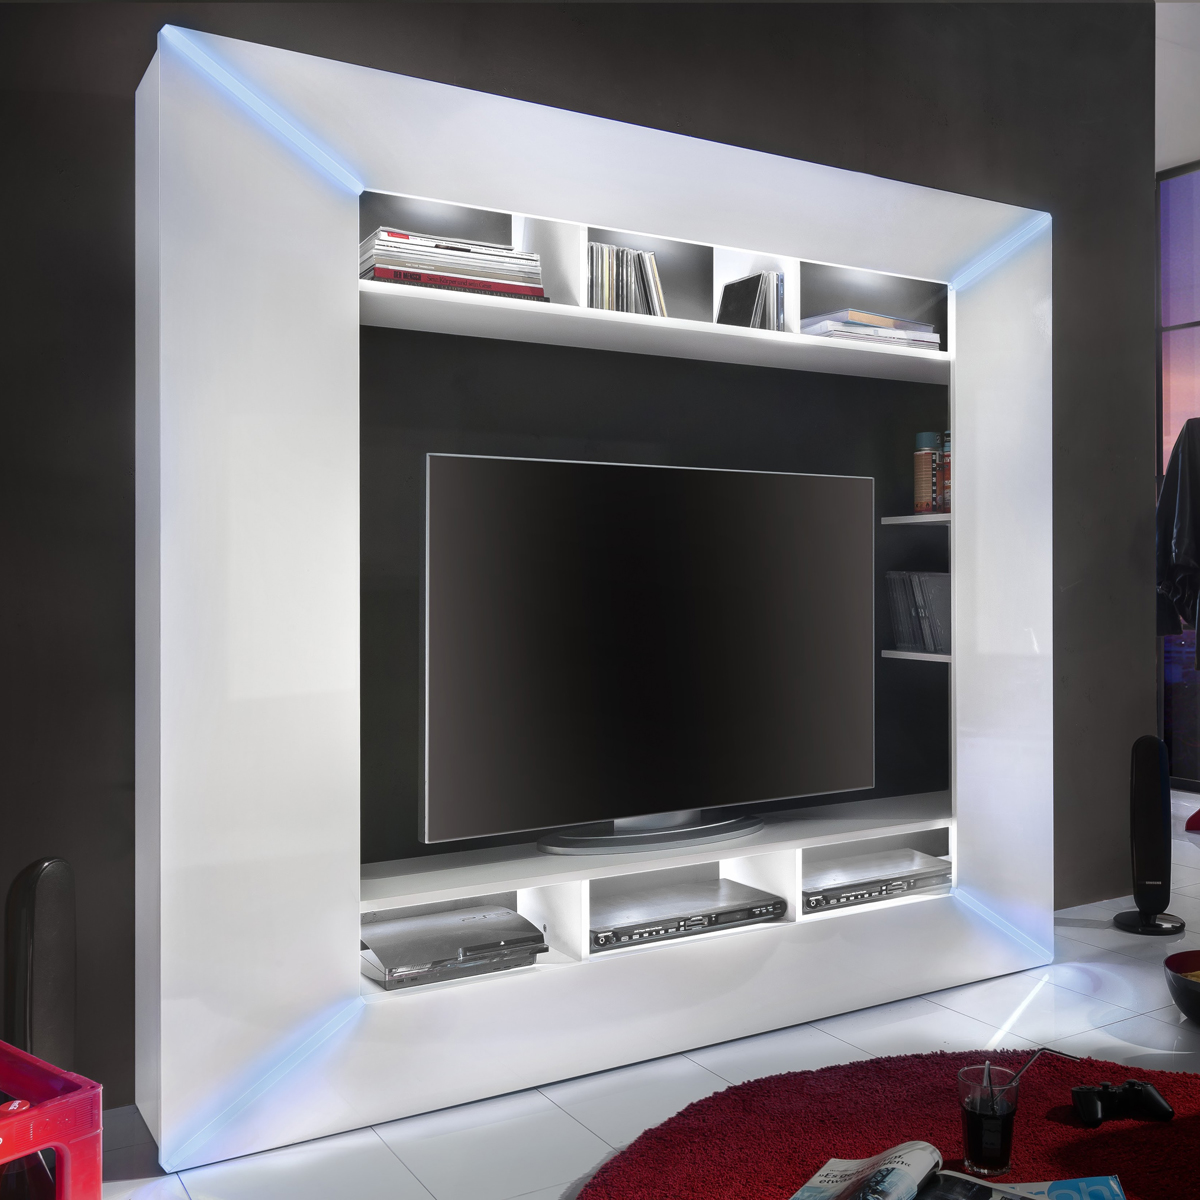 mediawand race medienwand wei hochglanz inkl rgb beleuchtung wohnwand tv wand ebay. Black Bedroom Furniture Sets. Home Design Ideas